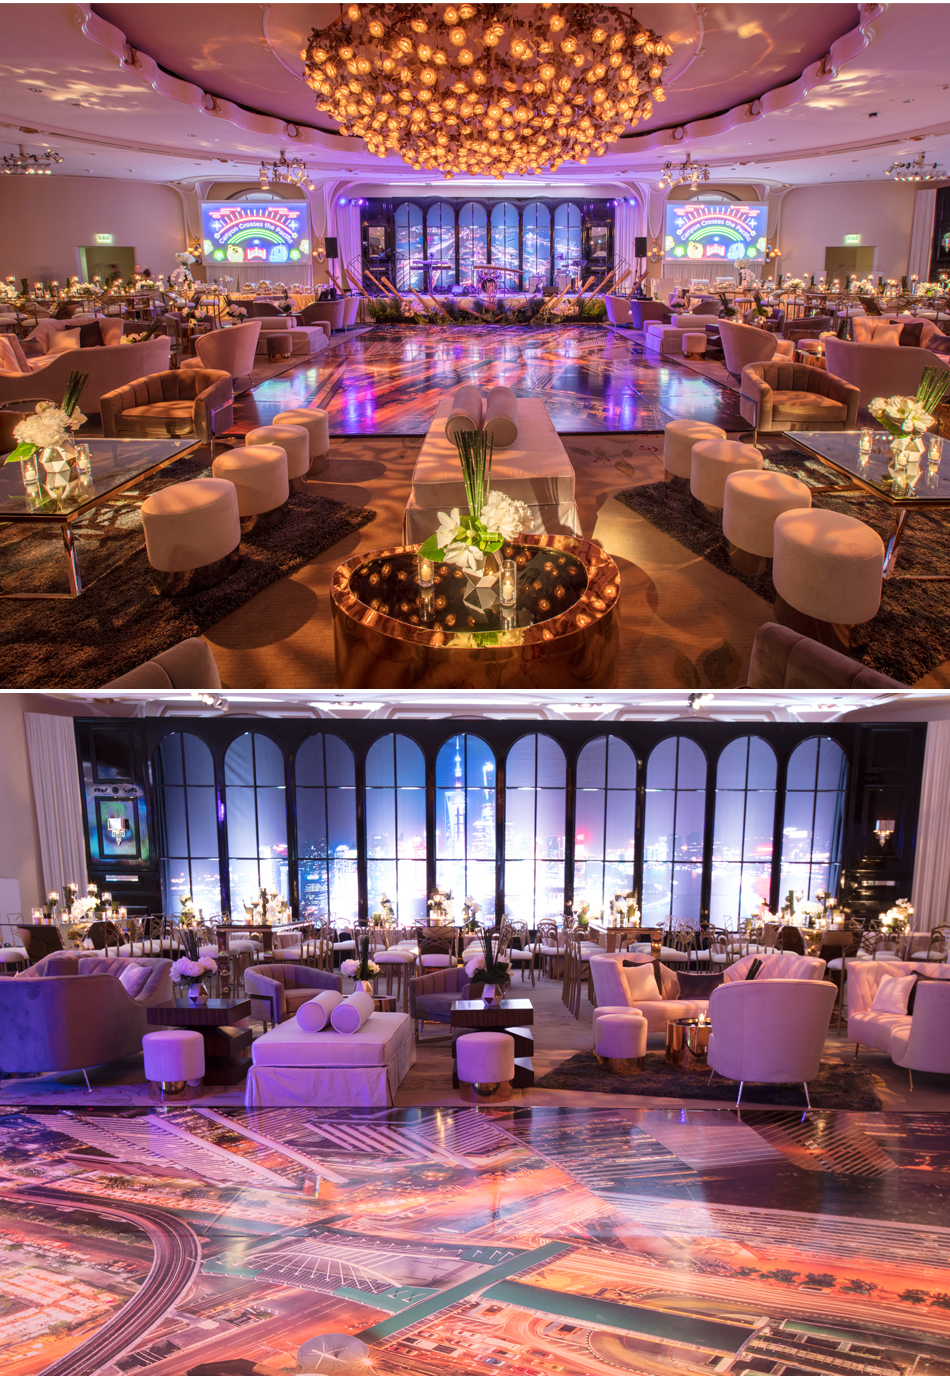 internationaleventcompany.com | International Event Company Los Angeles Wedding Planner and Designer | Corporate Holiday Party and Meetings at The Beverly Hills Hotel | Luxury Event Planners in Southern California _ (2).jpg